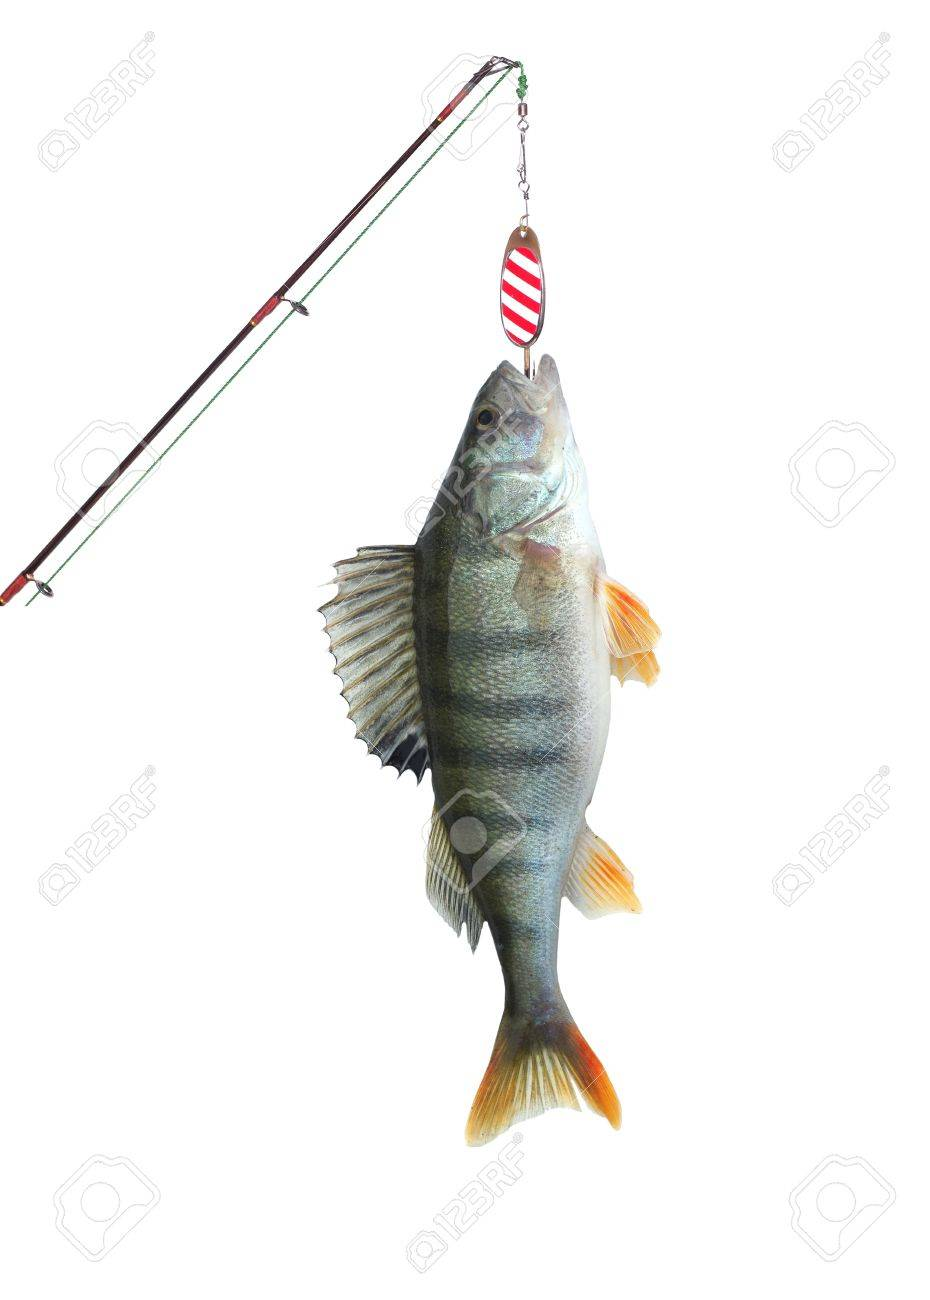 perch on fishing-rod on white background stock photo, picture and, Fishing Rod